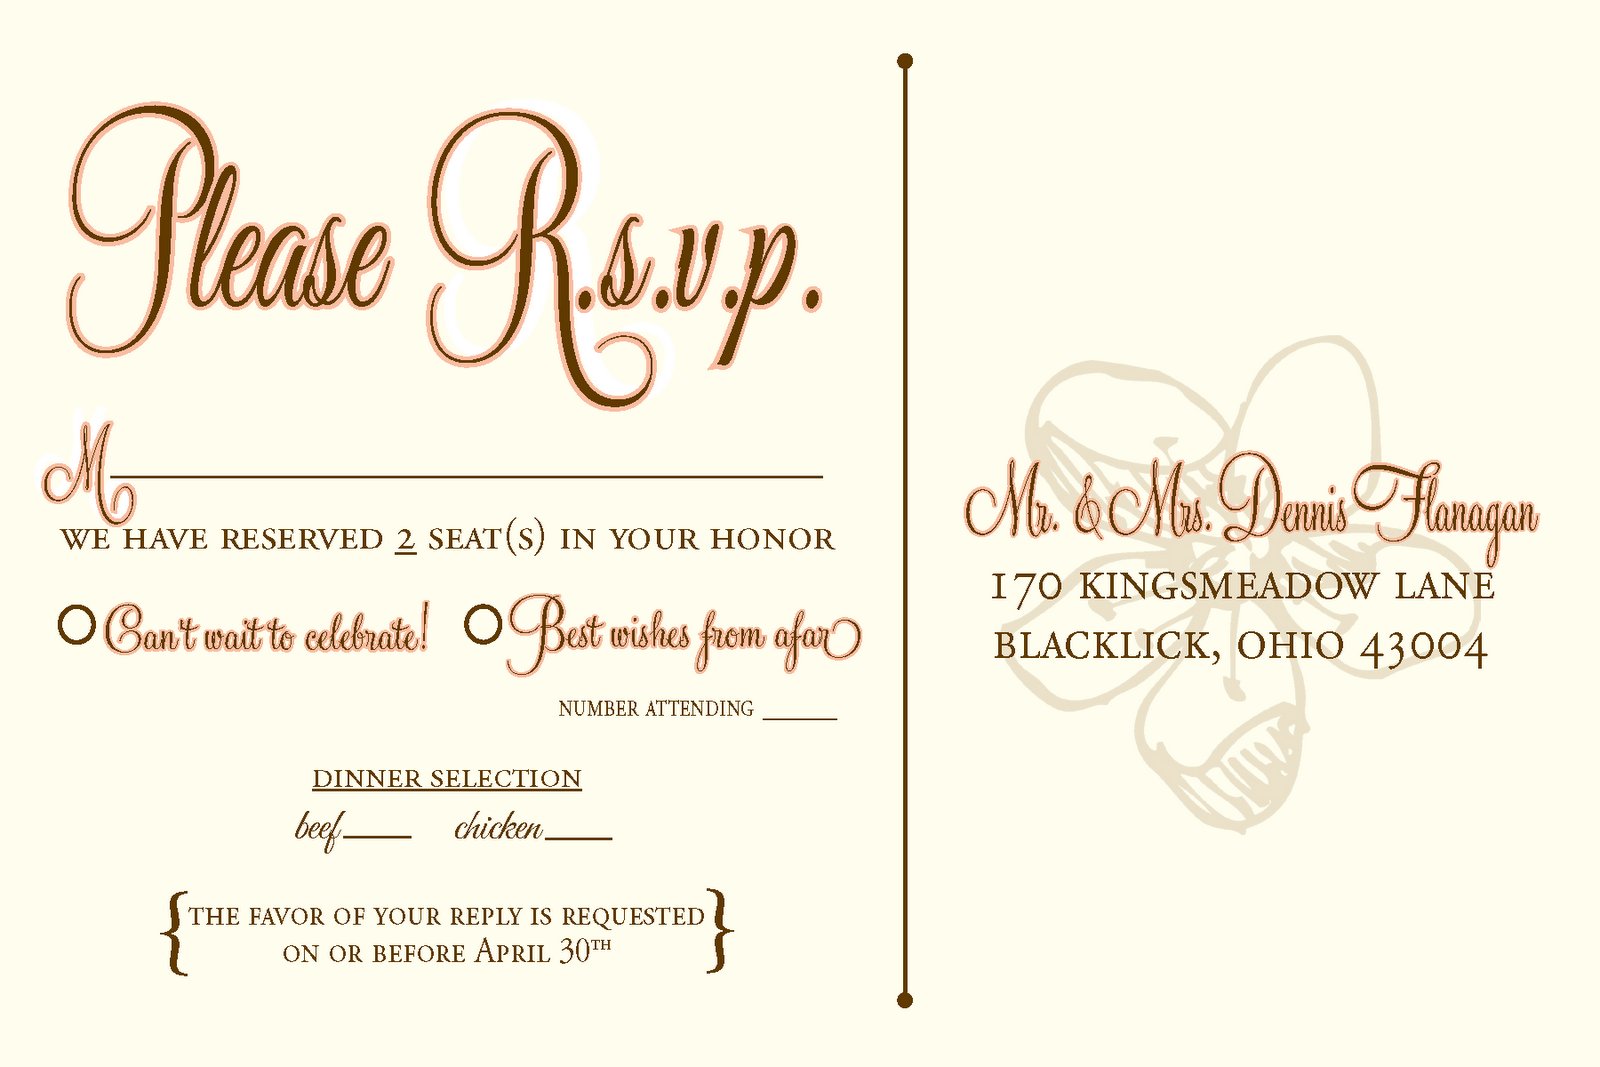 Rsvp To Wedding Invitation Wording: Wedding Rsvp Wording - Google Search